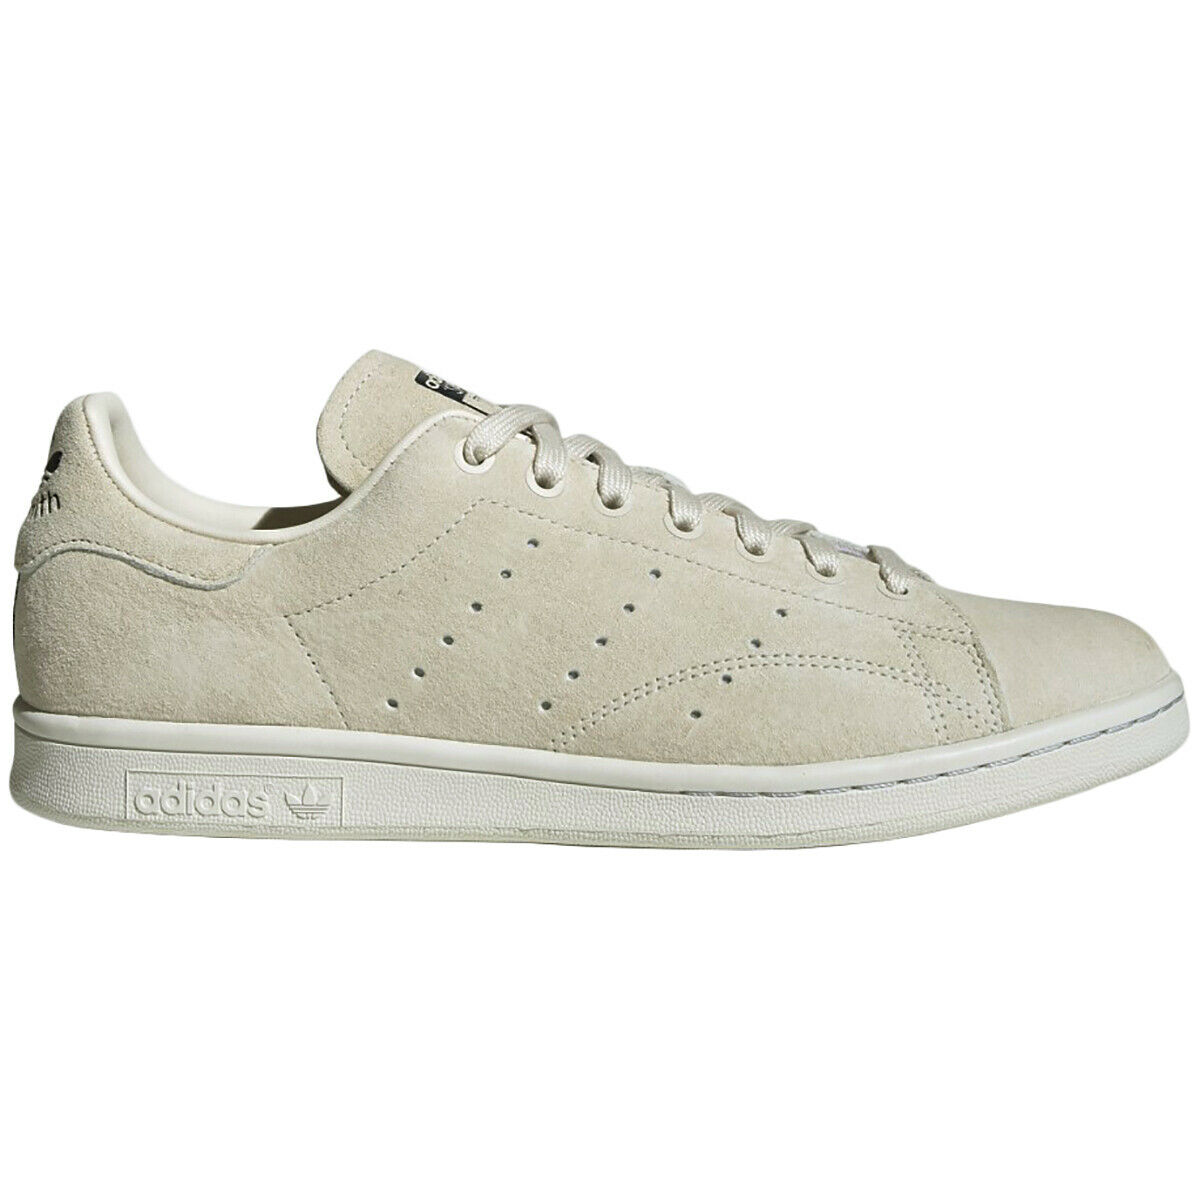 Adidas Stan Smith Suede Casual Flat Lace-Up Sneakers Mens Trainers